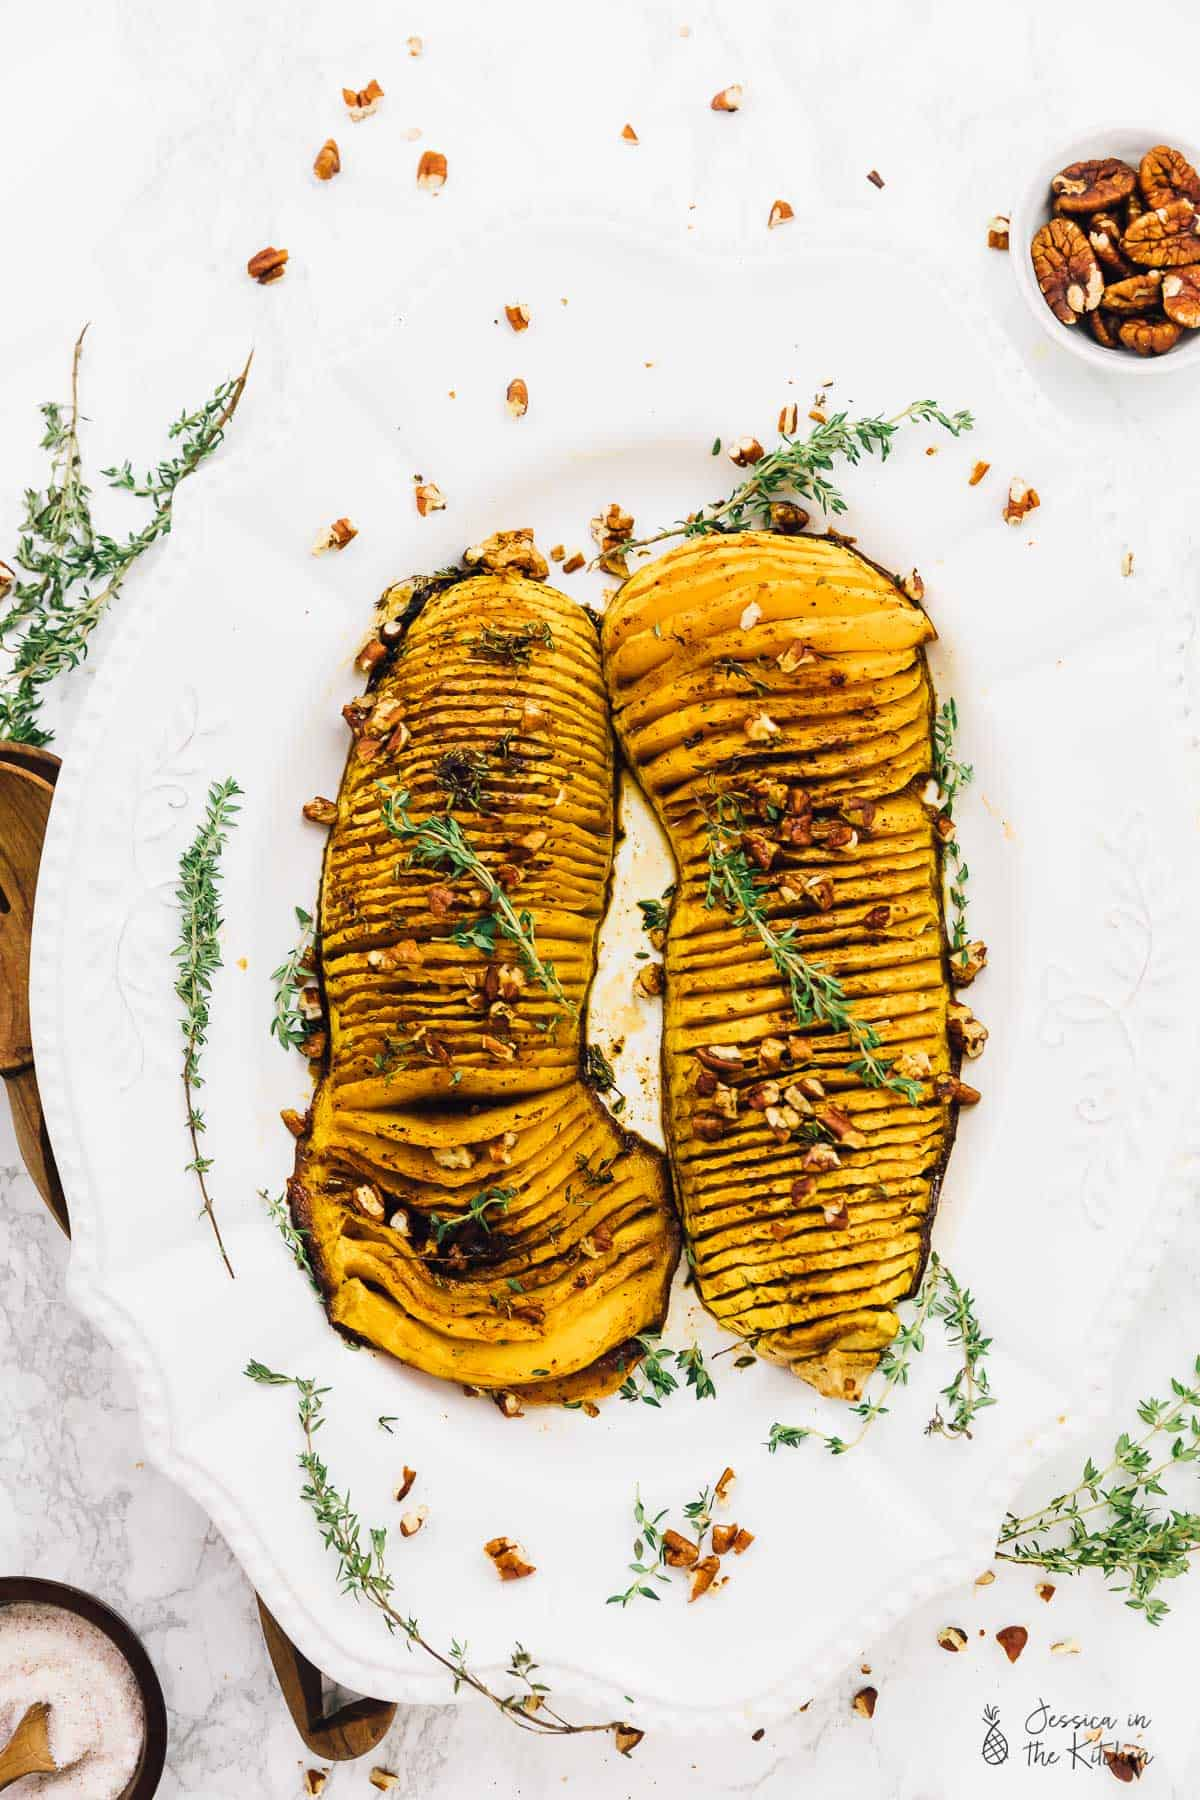 Hasselback Butternut Squash with Maple Pecan Drizzle